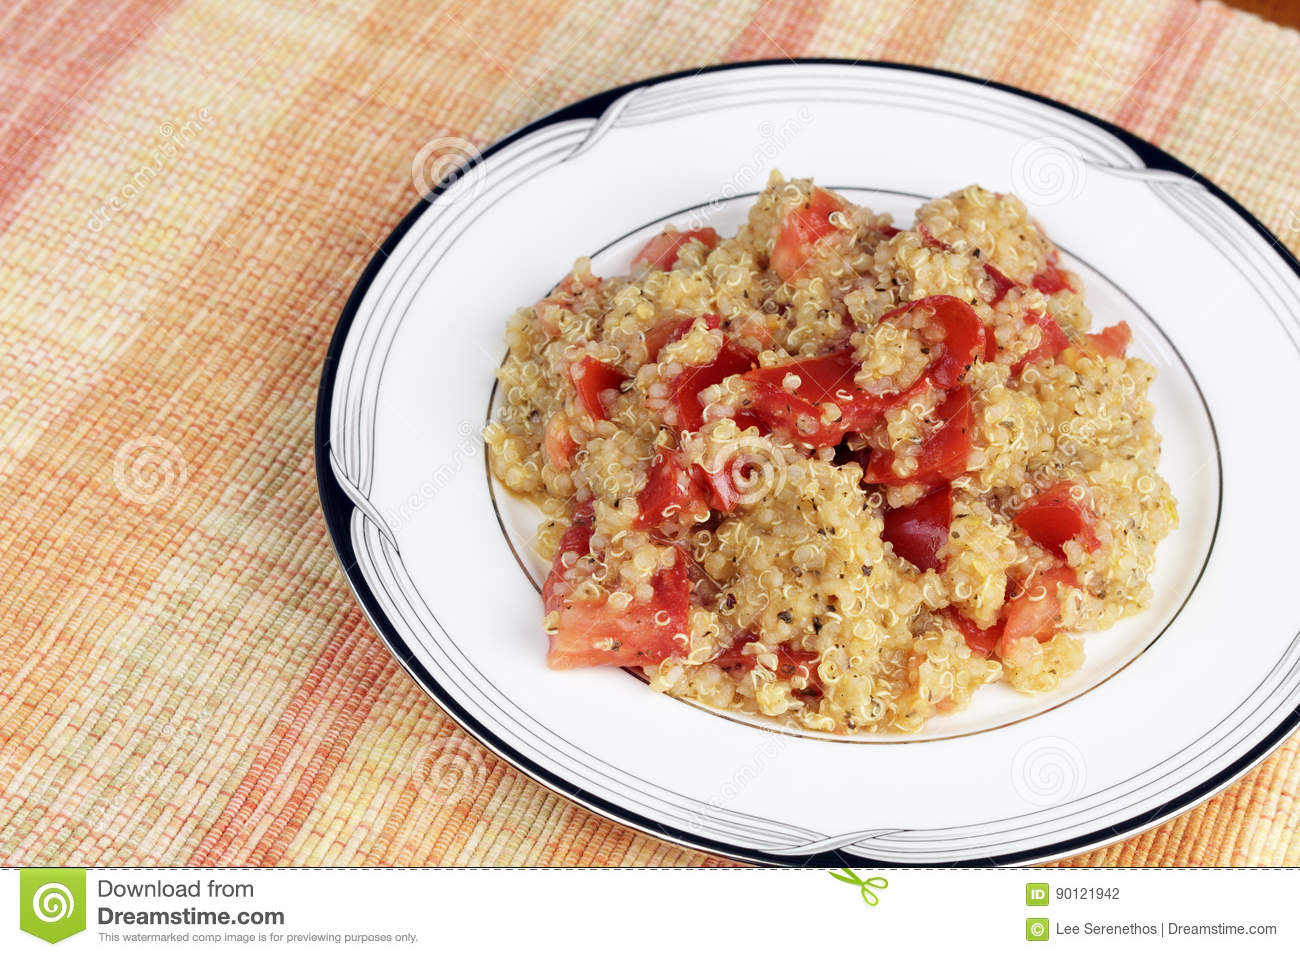 Quinoa with Tomatoes and Herbs Meal